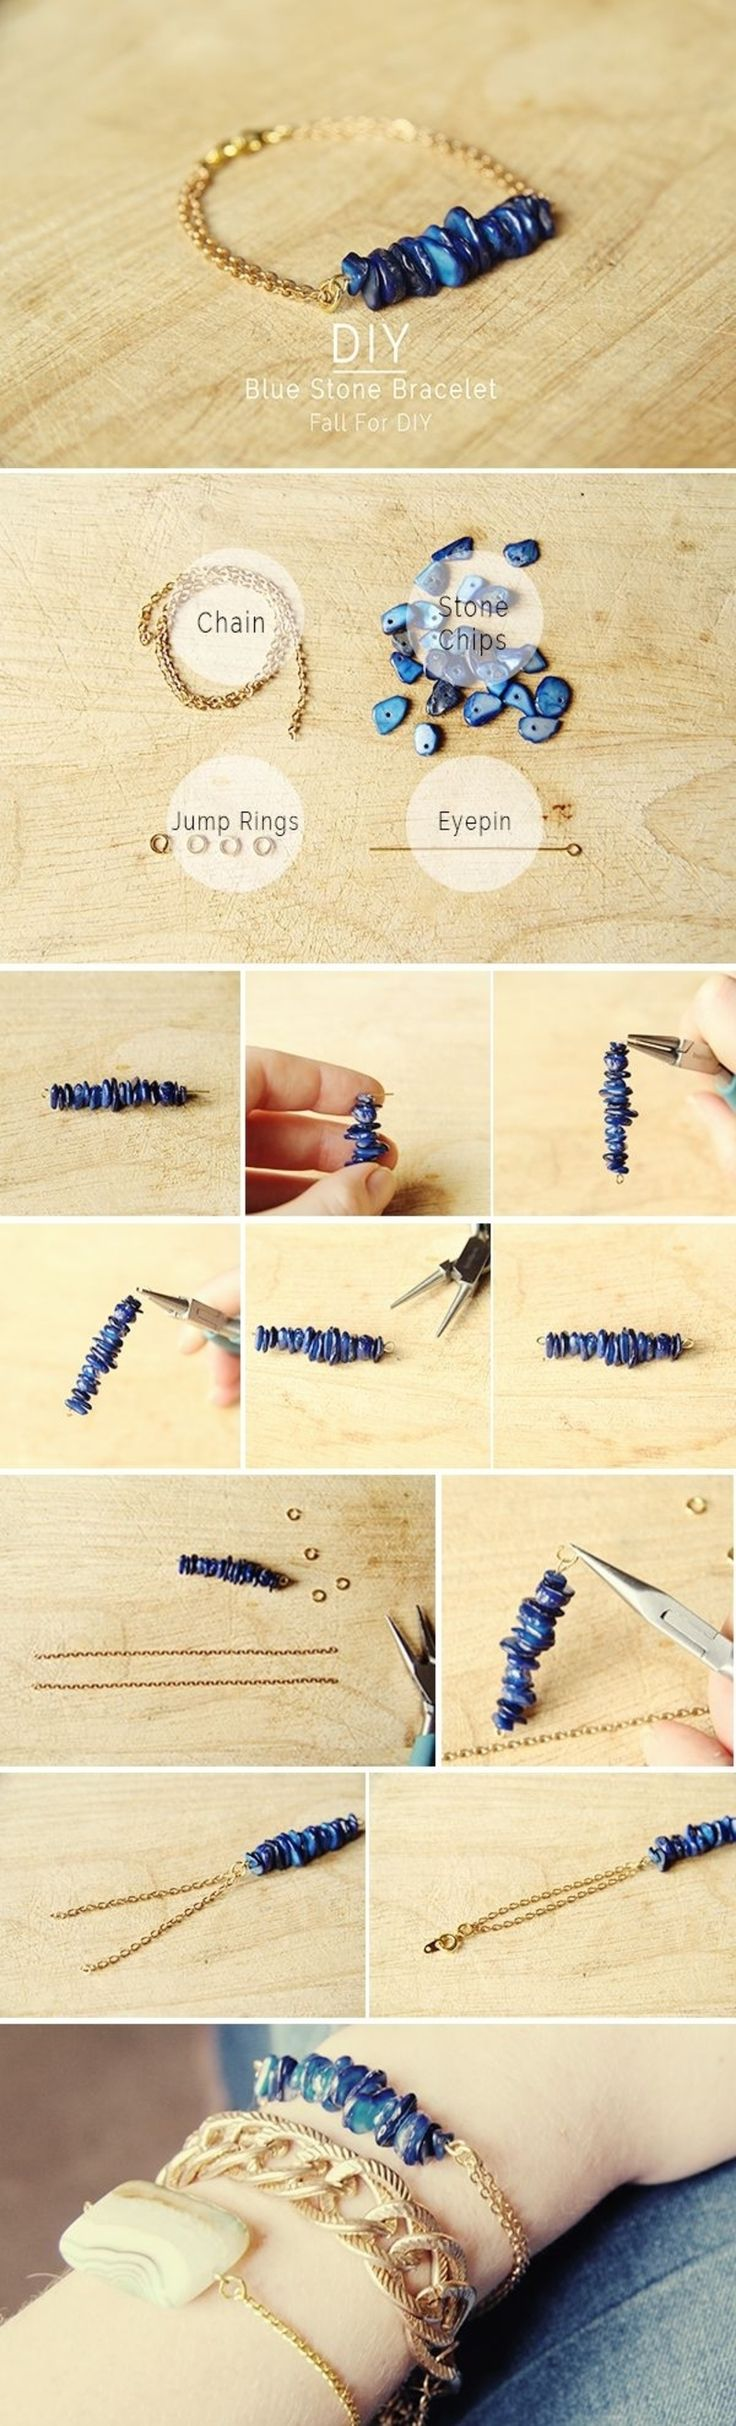 46 Easy DIY #Jewelry Tutorials for Accessories Unique to You ...